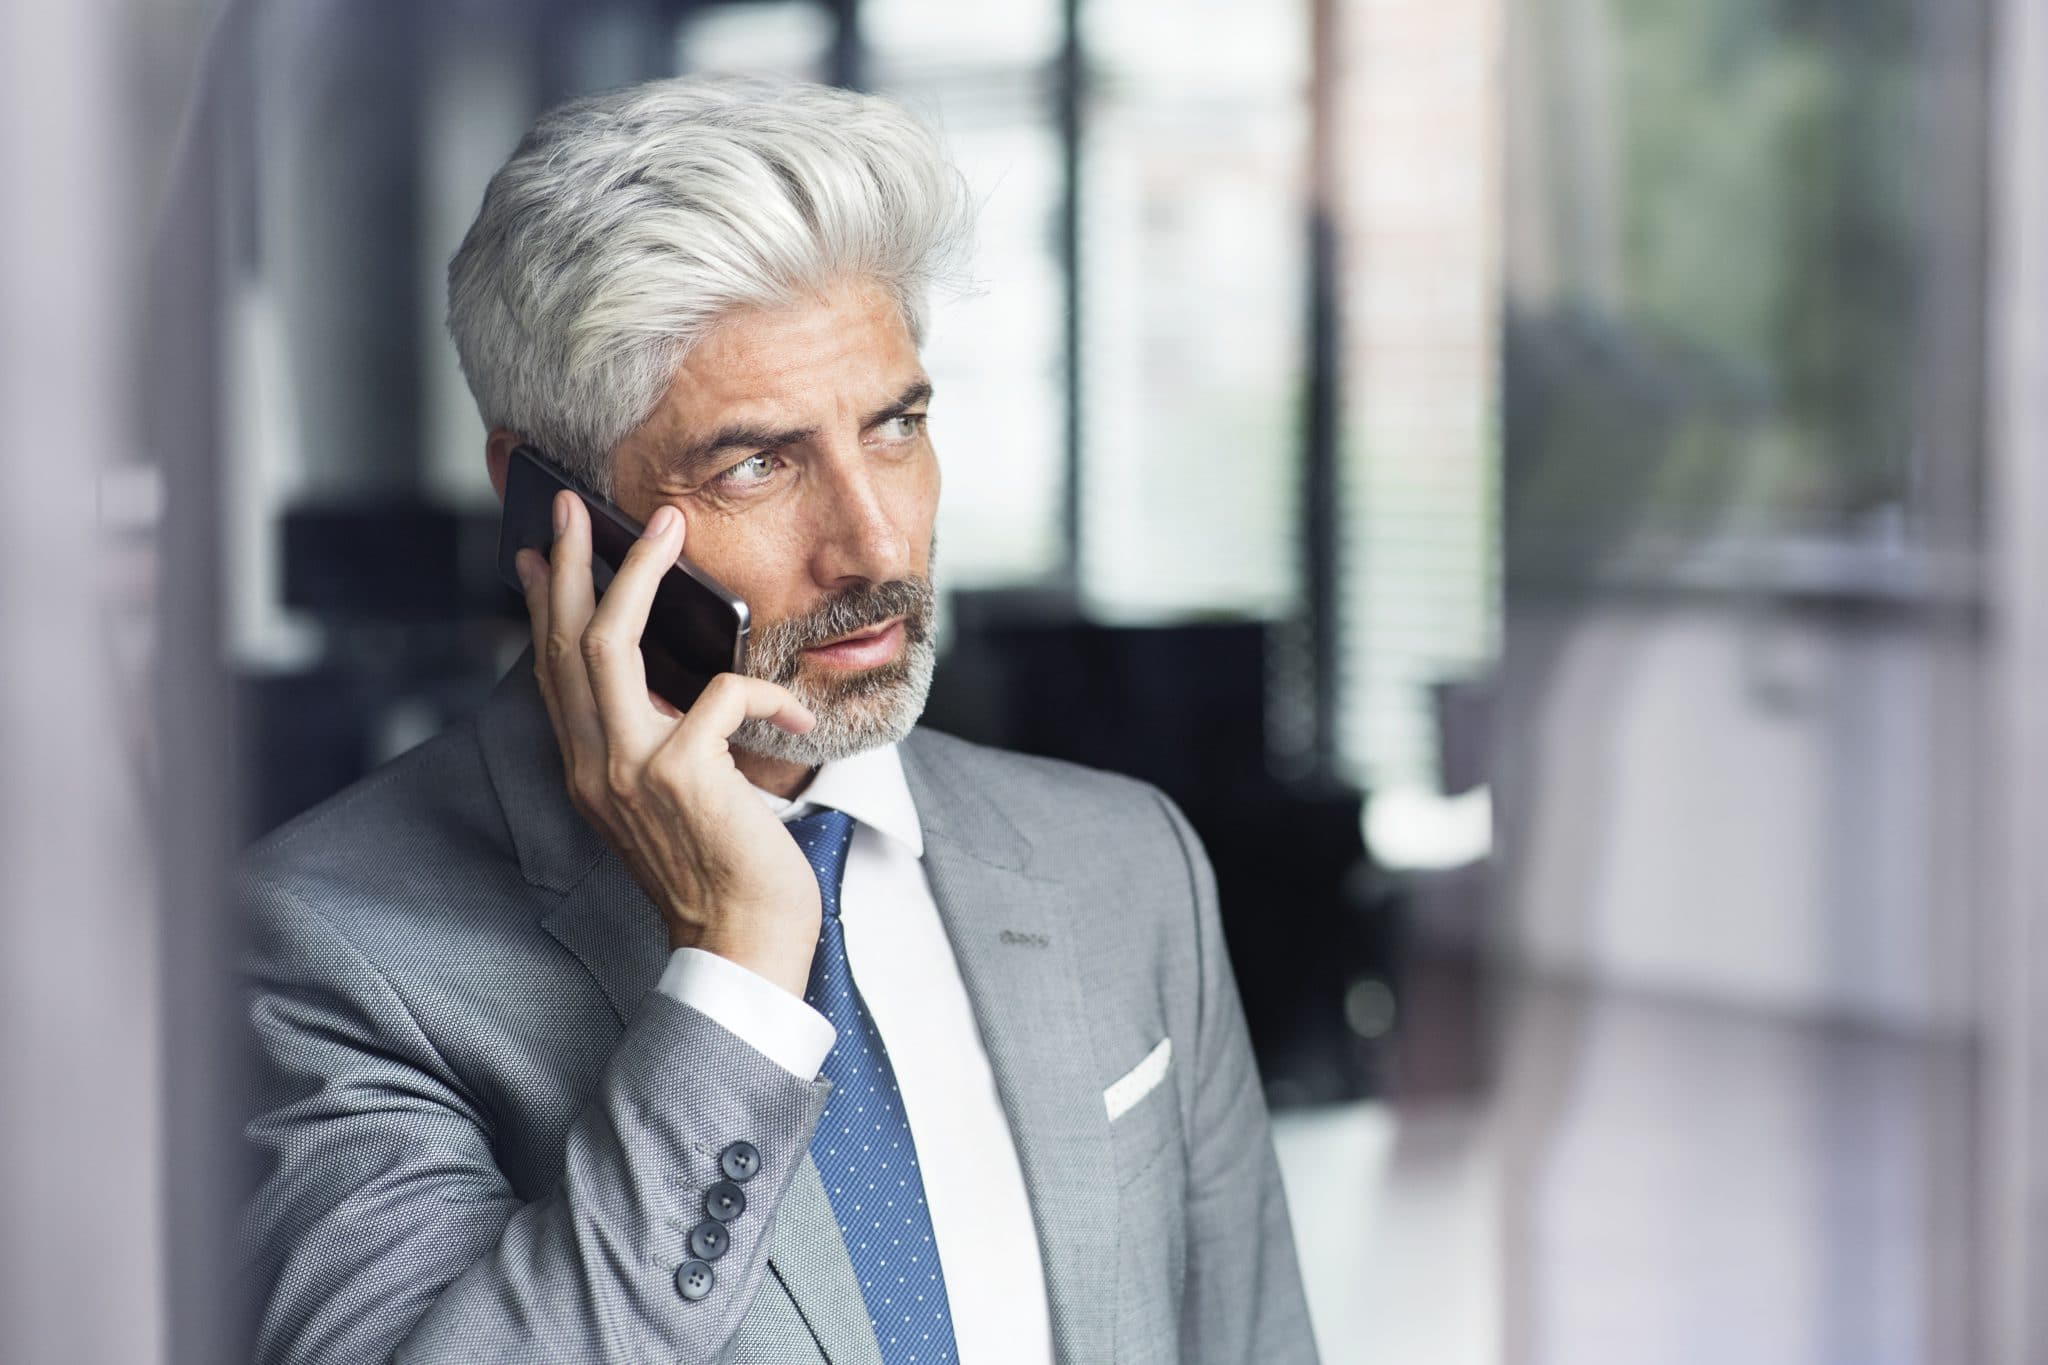 mature-businessman-with-smartphone-in-the-office-PSGYLJR